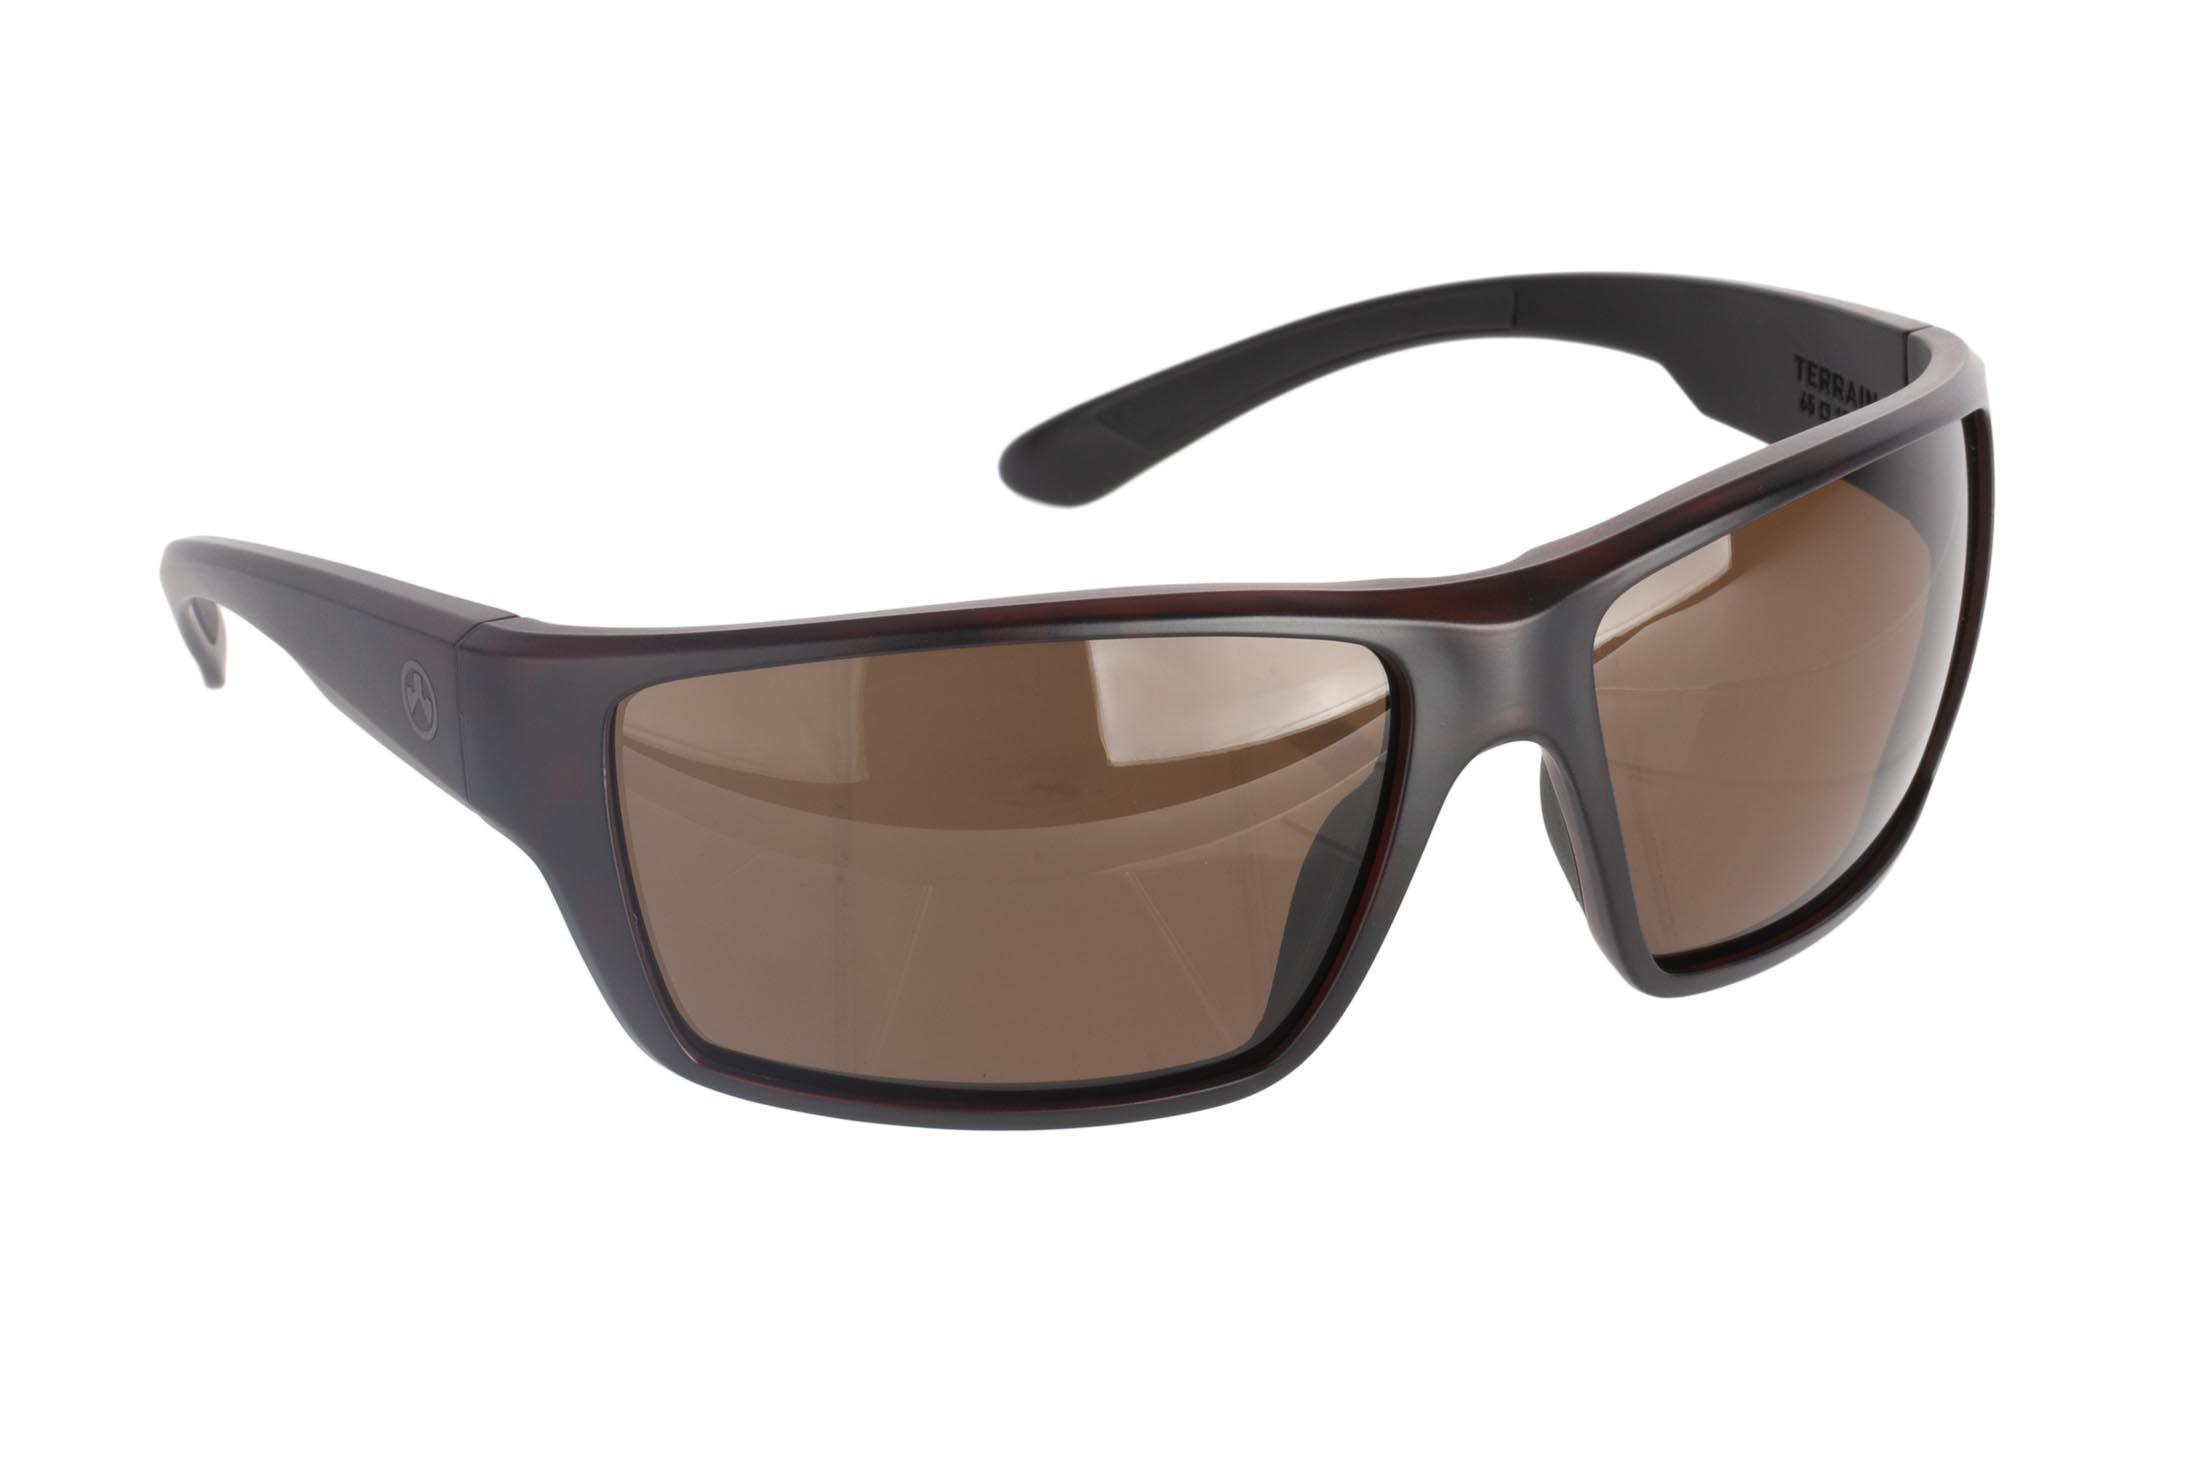 Magpul Terrain ballistic sunglasses with tortoise frame and polarized bronze lenses are ideal for medium-to-large sized shooters